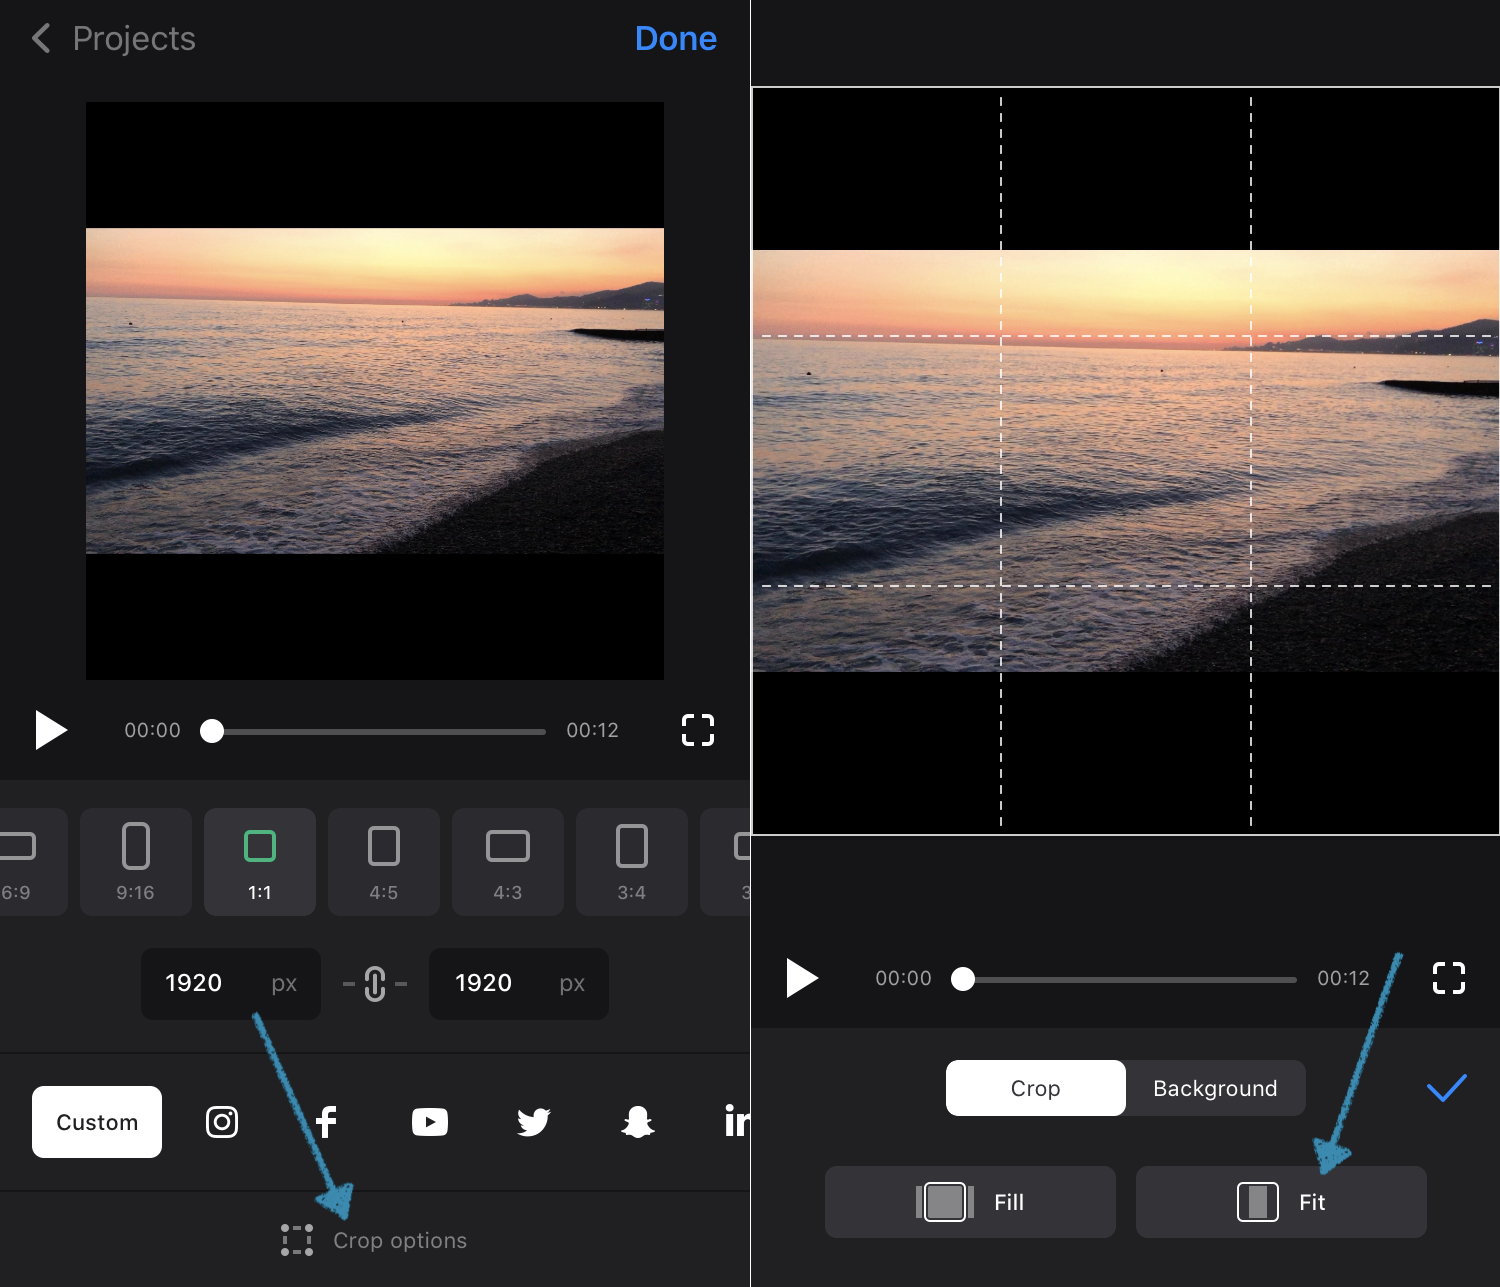 Choose to crop or not crop in the resize video app